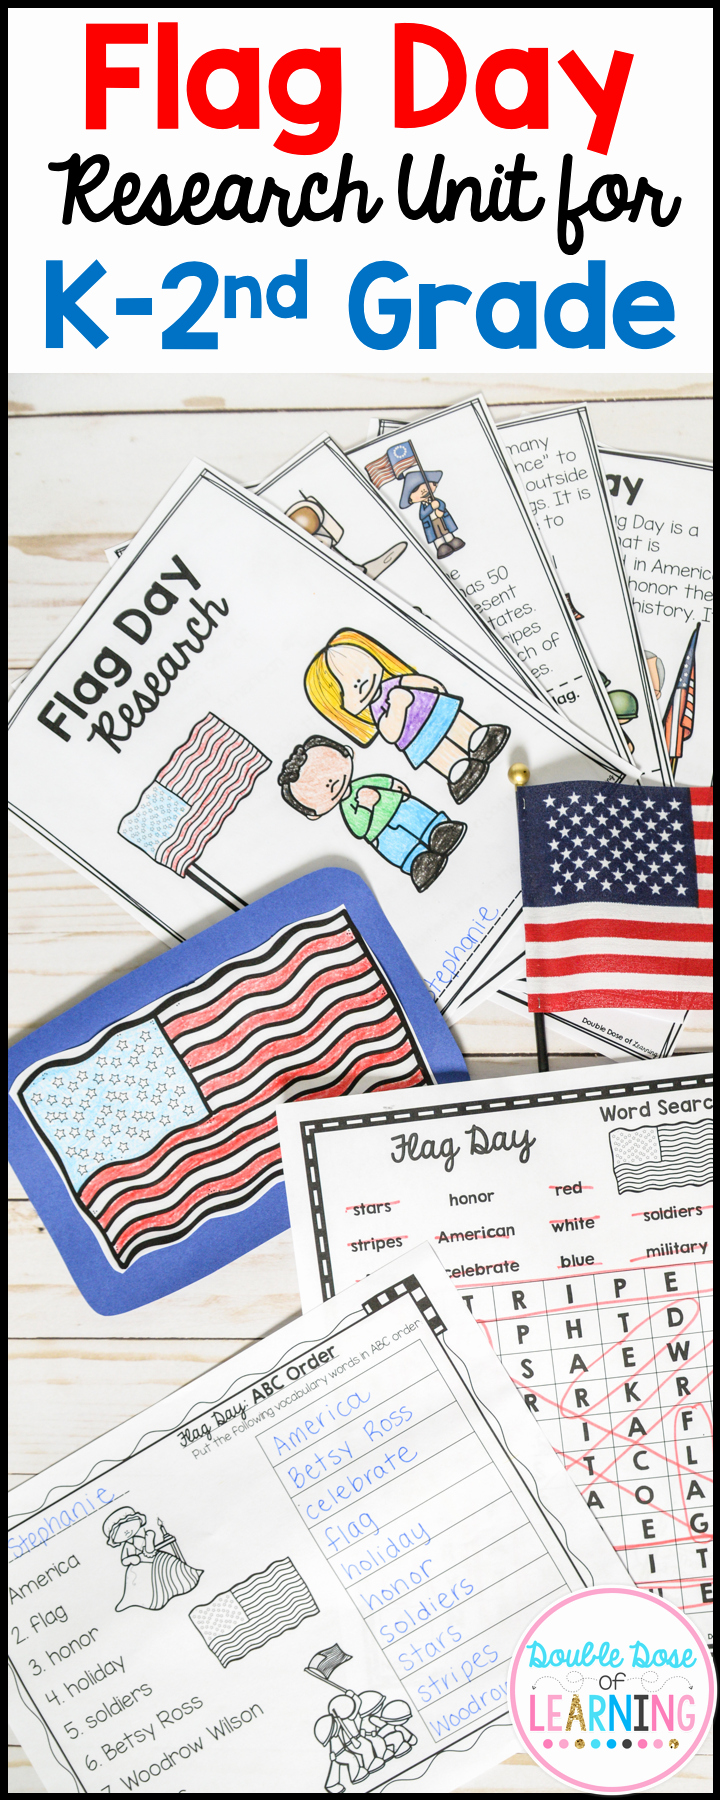 Flag Day Reading Comprehension Worksheets Inspirational Flag Day Research Unit for K 2nd Grade